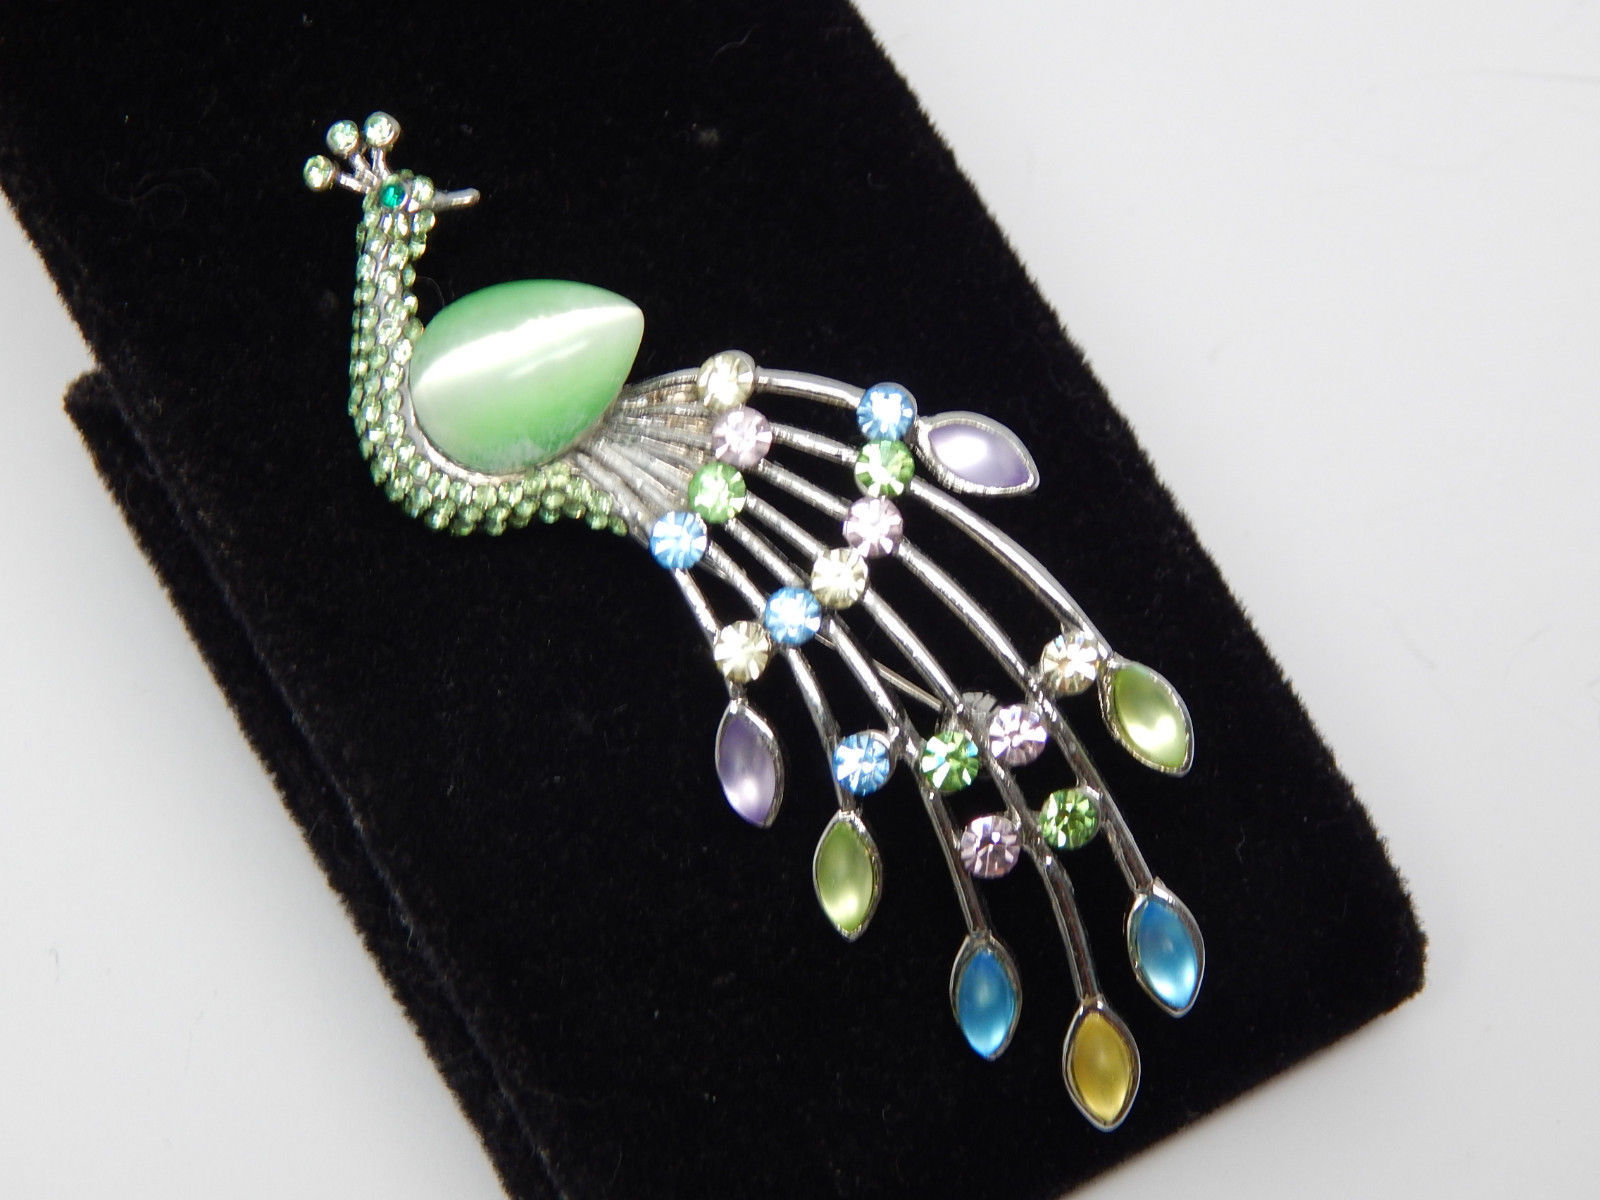 Primary image for Colorful PEACOCK BROOCH Pin in Silver tone with Rhinestones and Moonglow stones